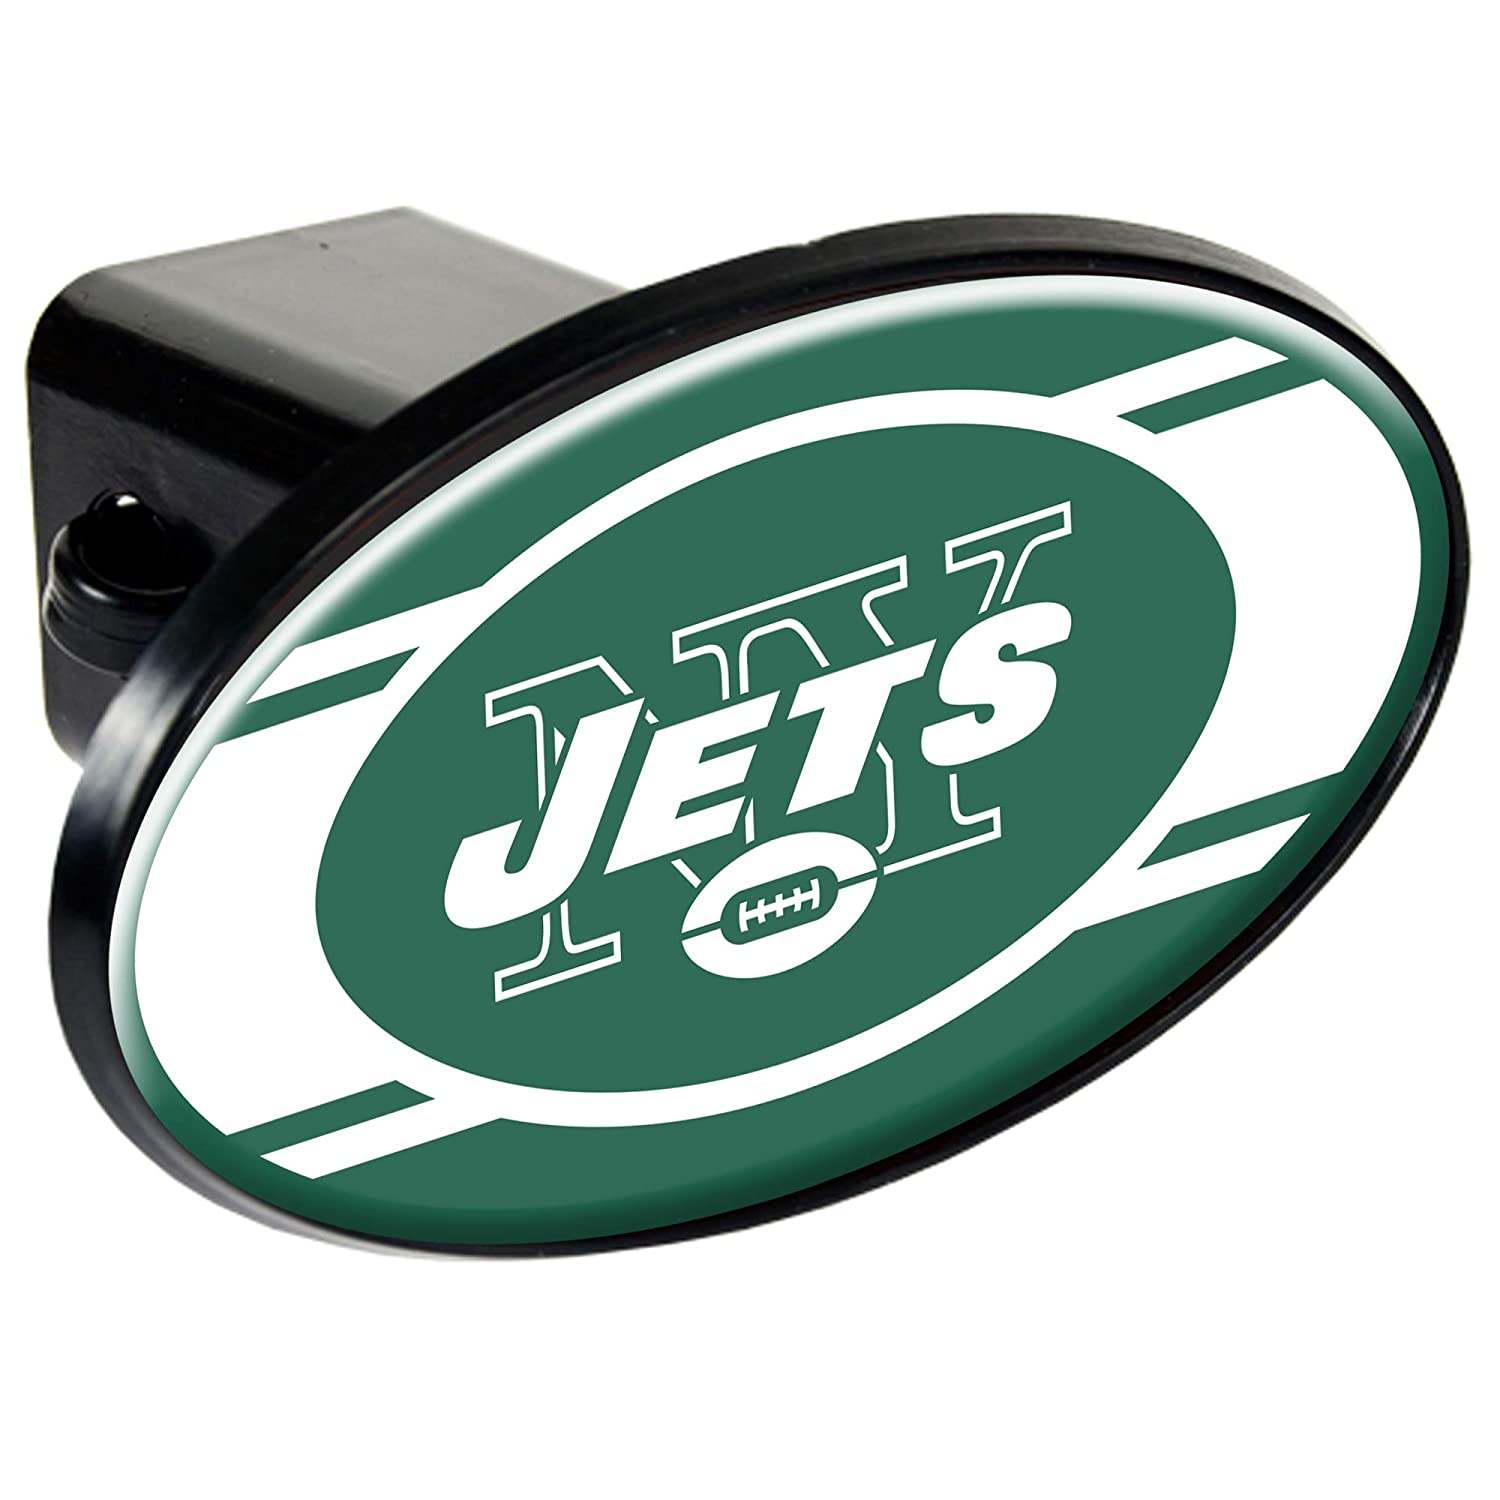 New York Jets 2 NFL Trailer Hitch Receiver Cover ABS Plastic